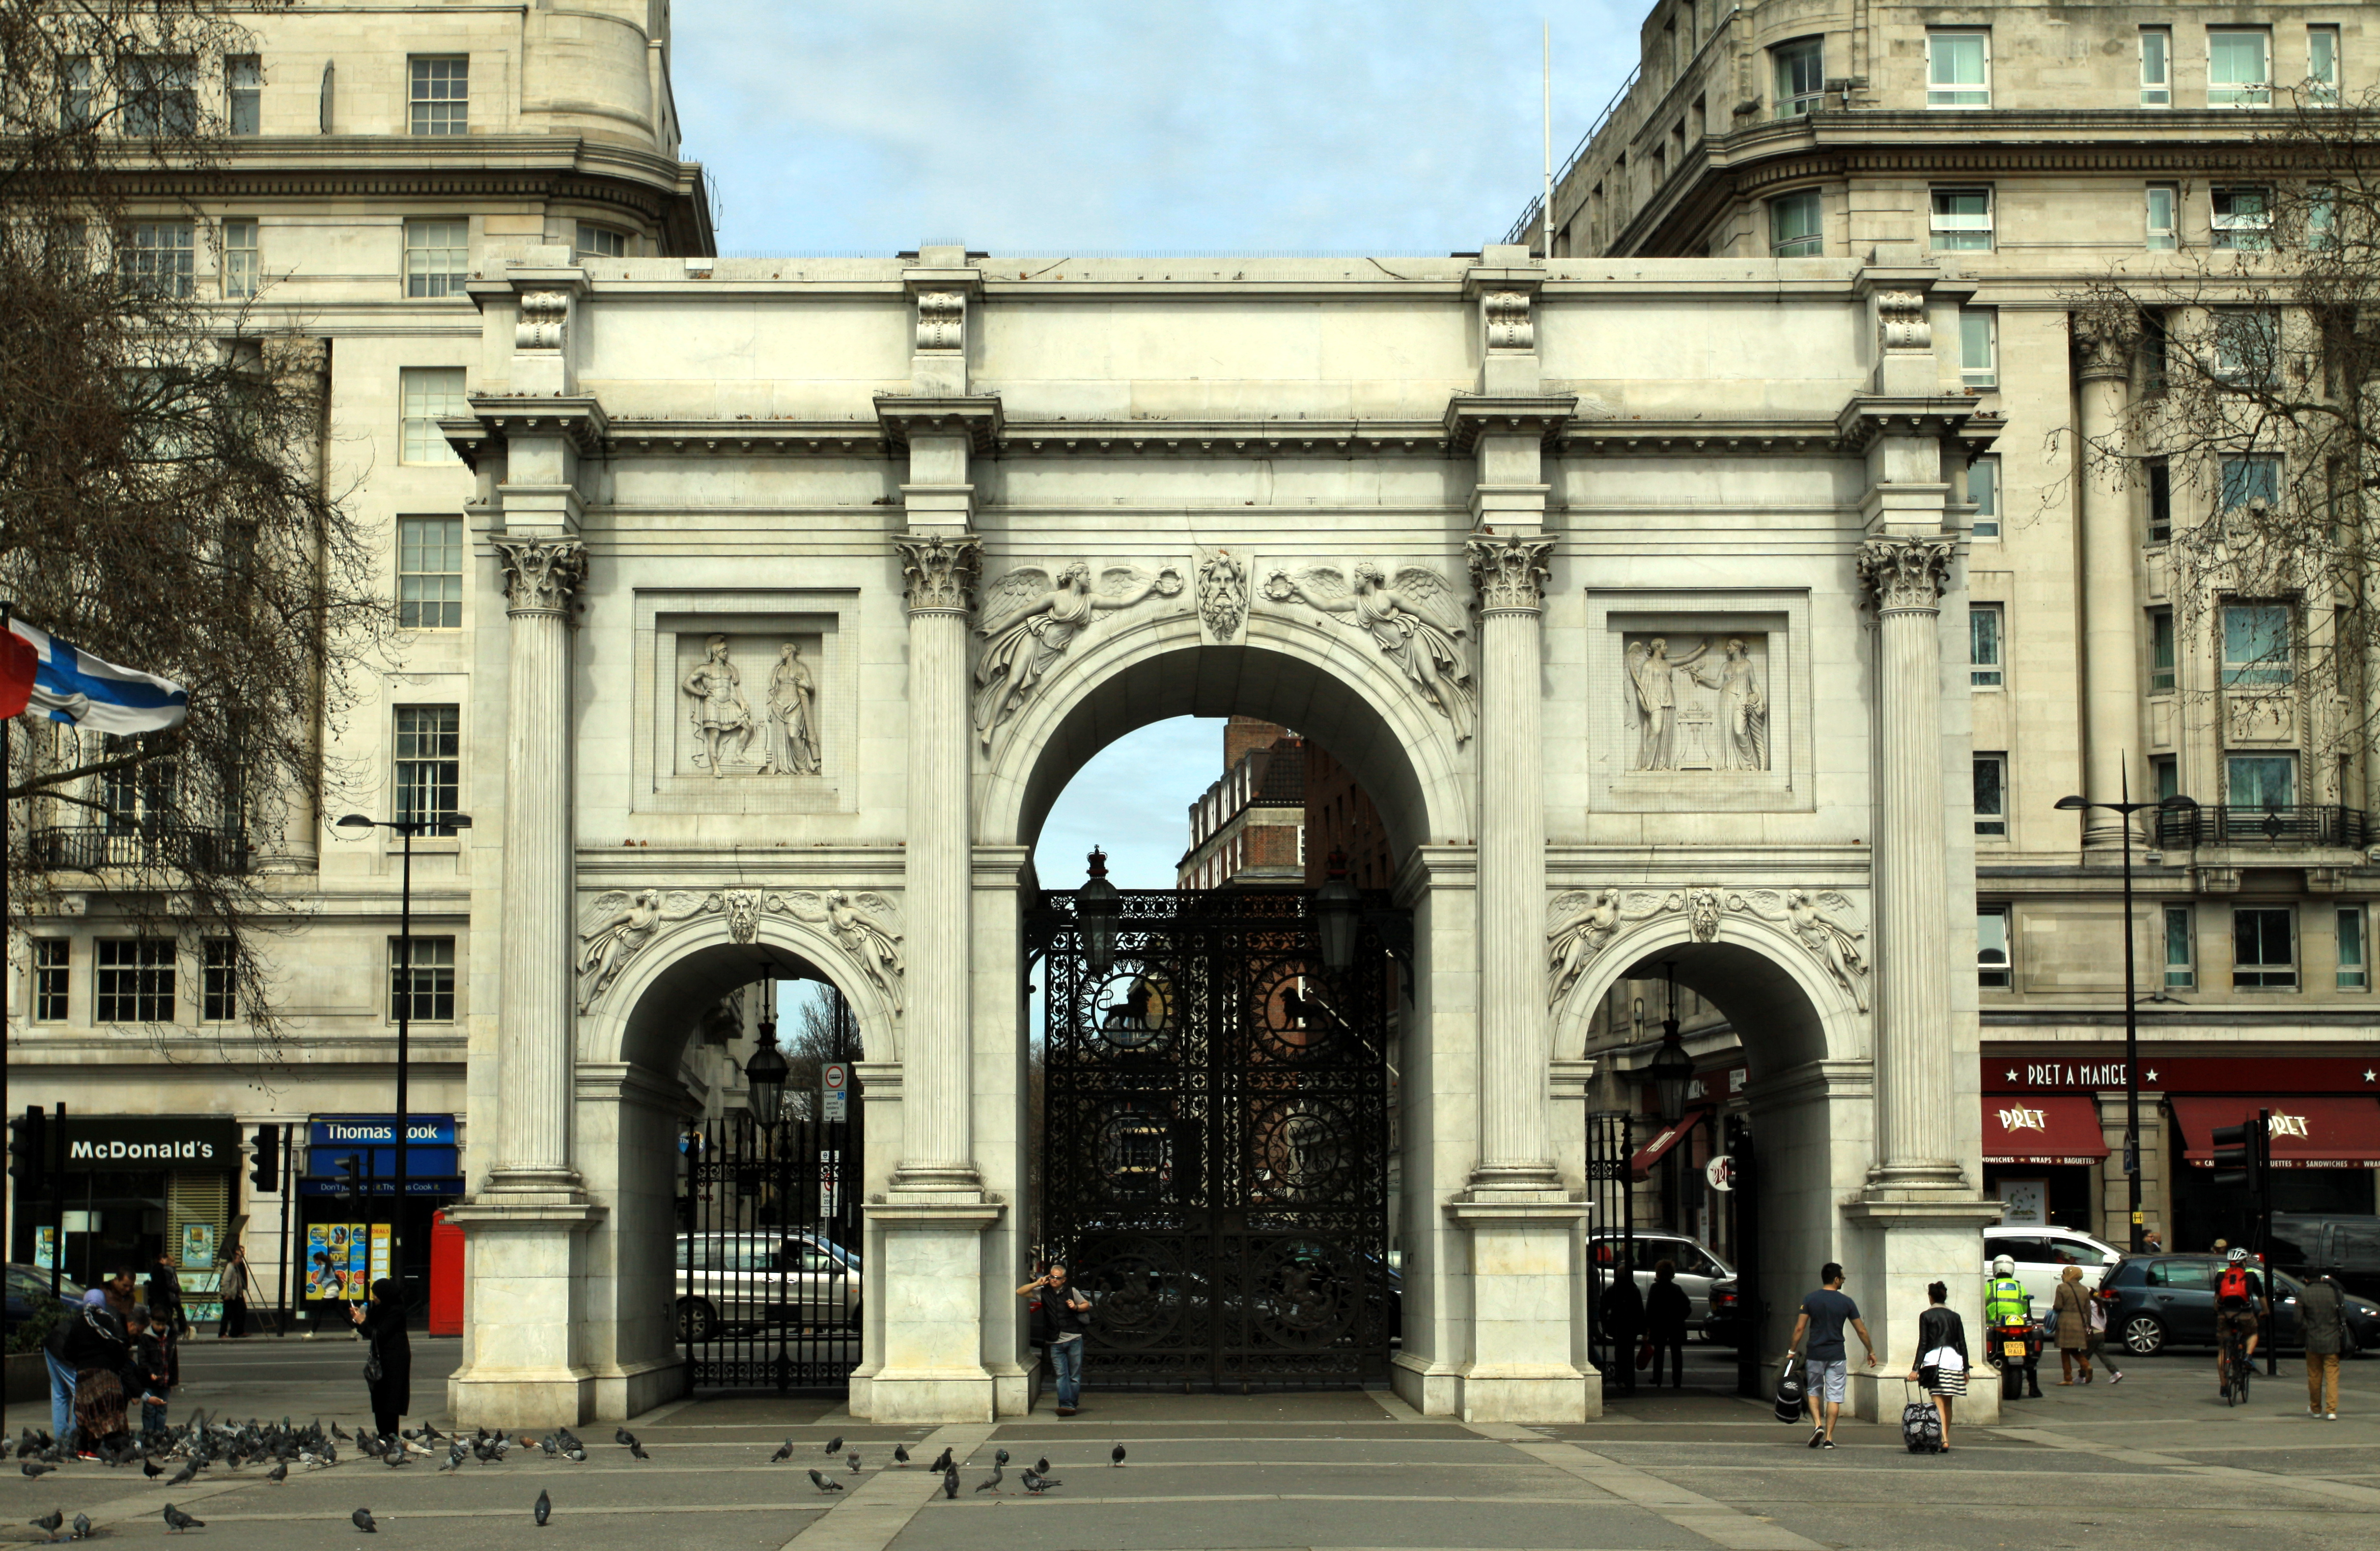 https://upload.wikimedia.org/wikipedia/commons/0/08/Marble_Arch_in_London,_spring_2013_%284%29.JPG